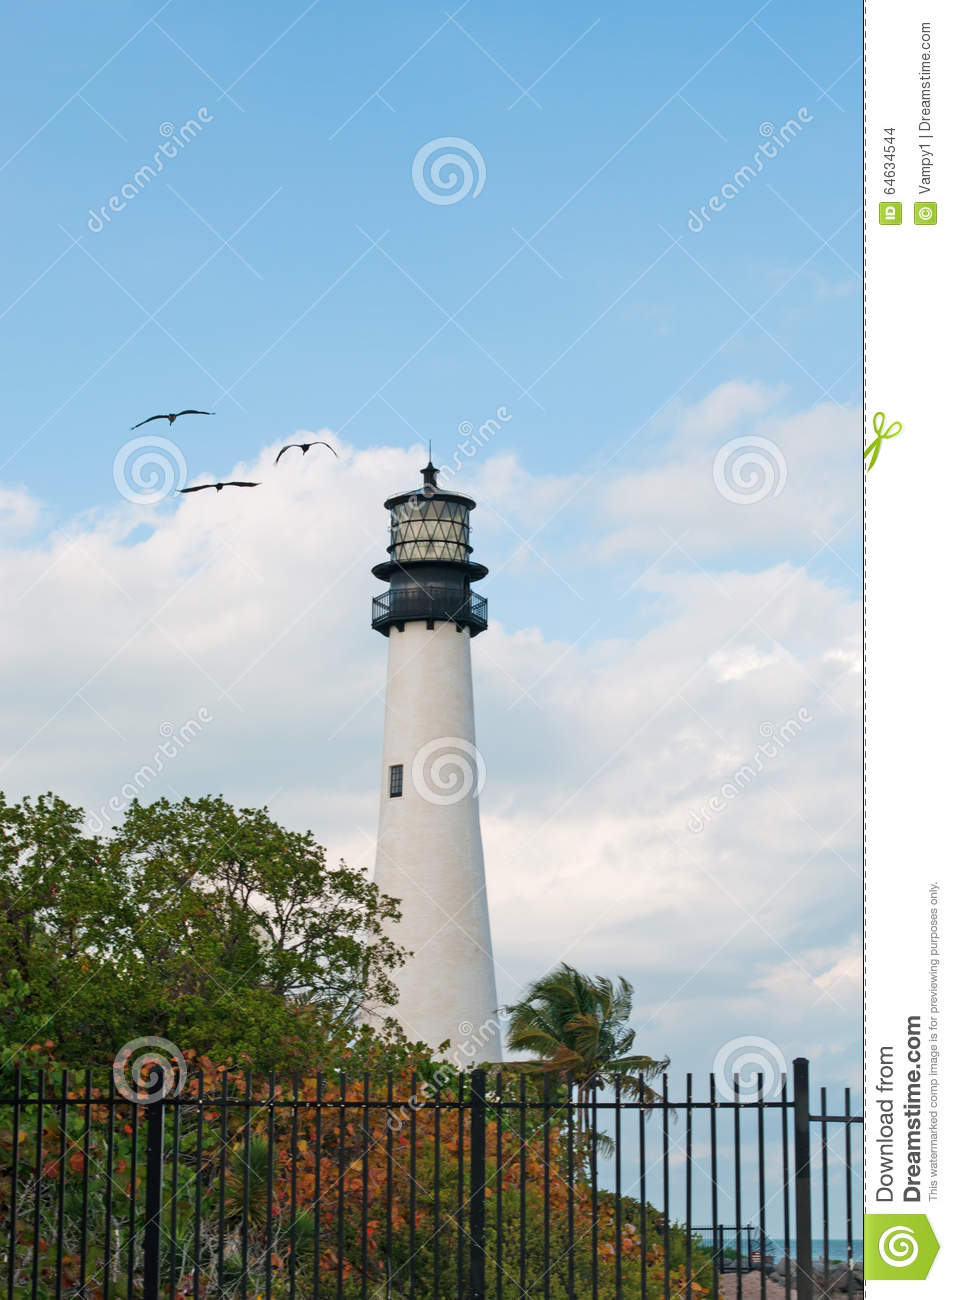 Cape Florida Lighthouse, Beach, Vegetation, Bill Baggs Cape